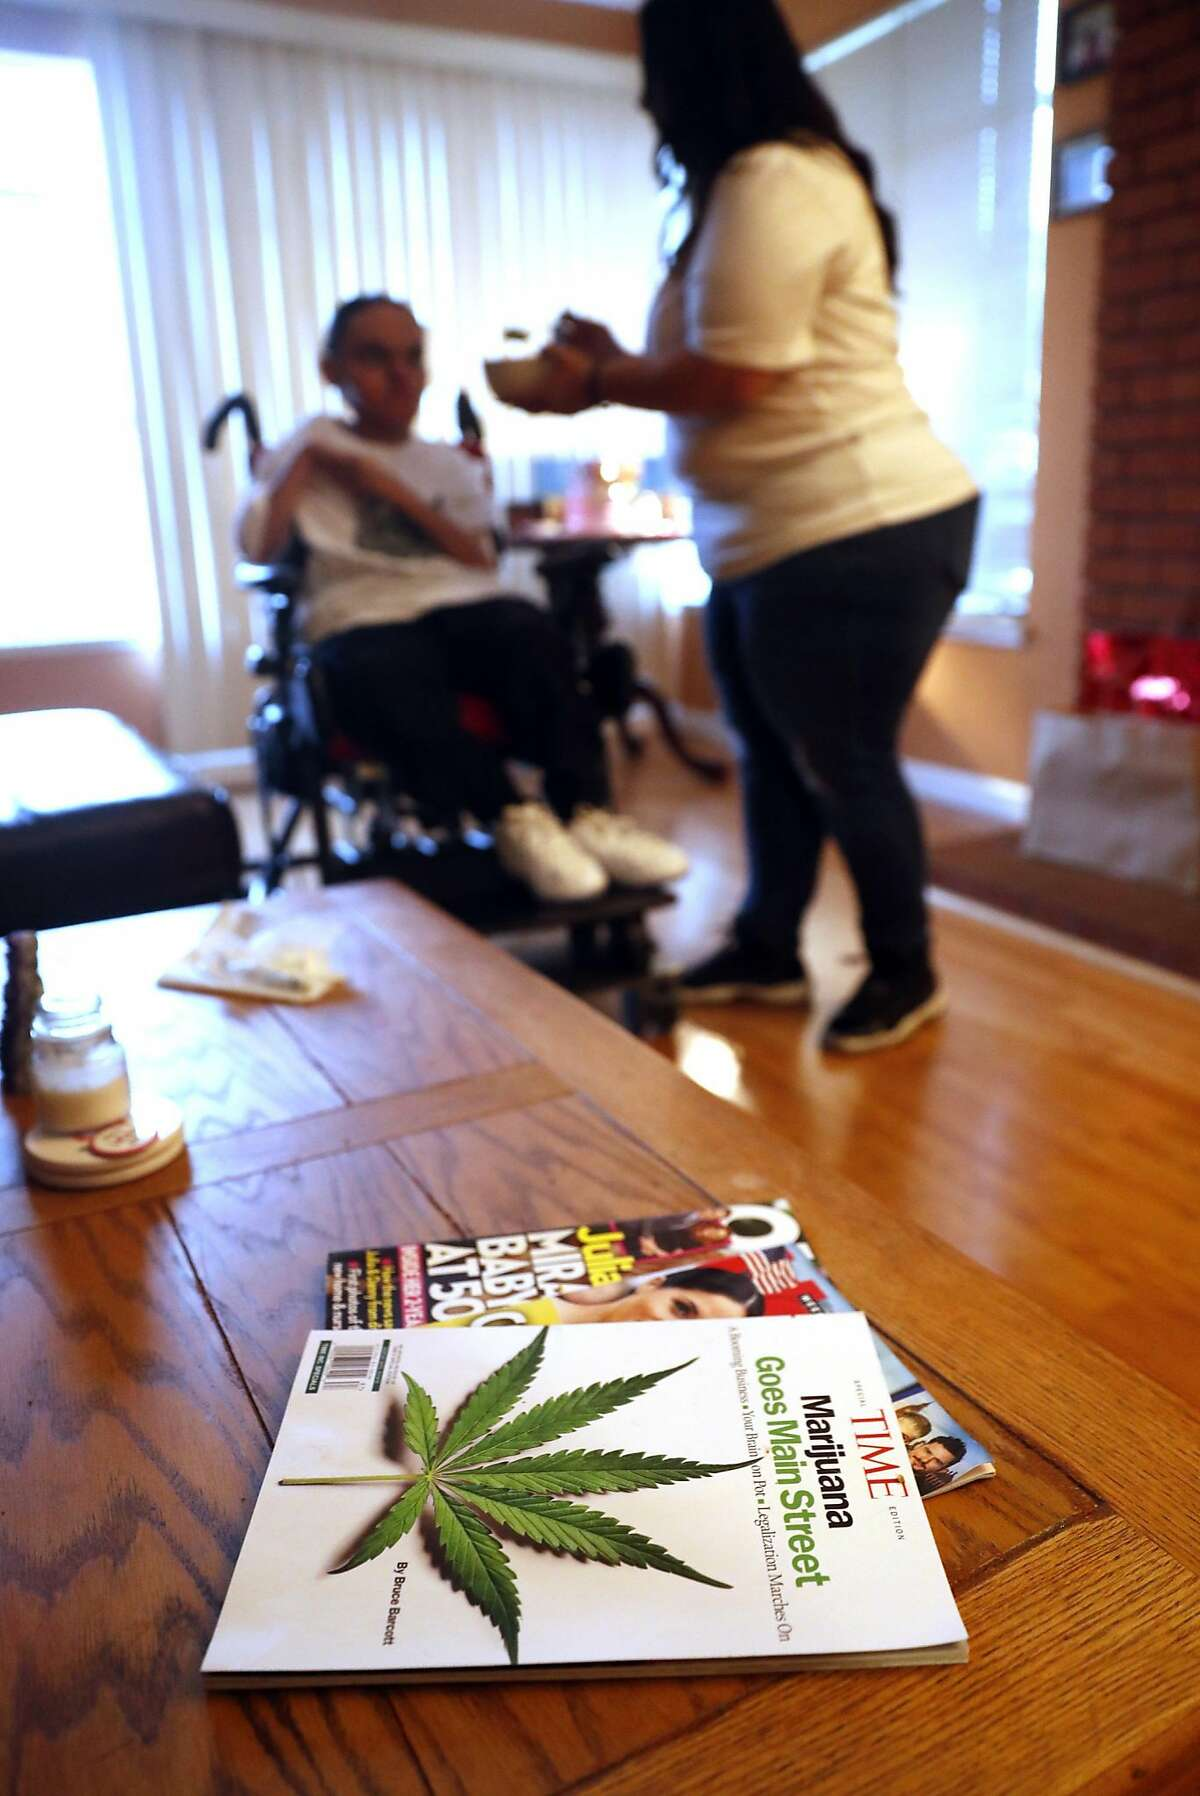 Karina Garcia feeds her son, JoJo, after administering medical marijuana to him at their home in San Bruno, Calif. on Monday, August 20, 2018.